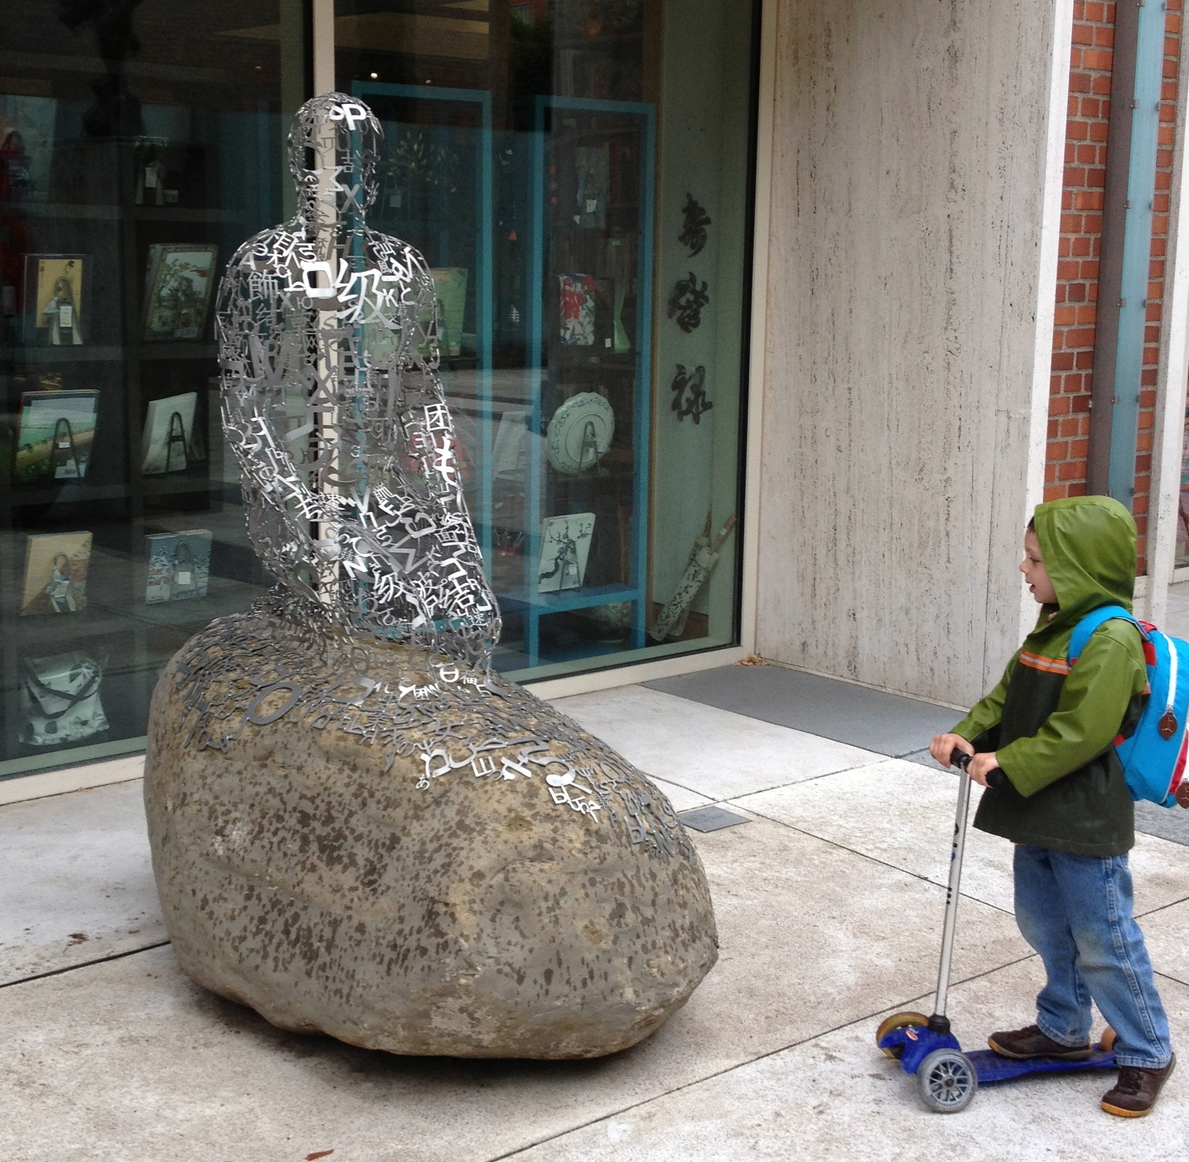 This little guy seems to be quite intrigued by the ghost-like figure made up of letters from different languages by Jaume Plensa.